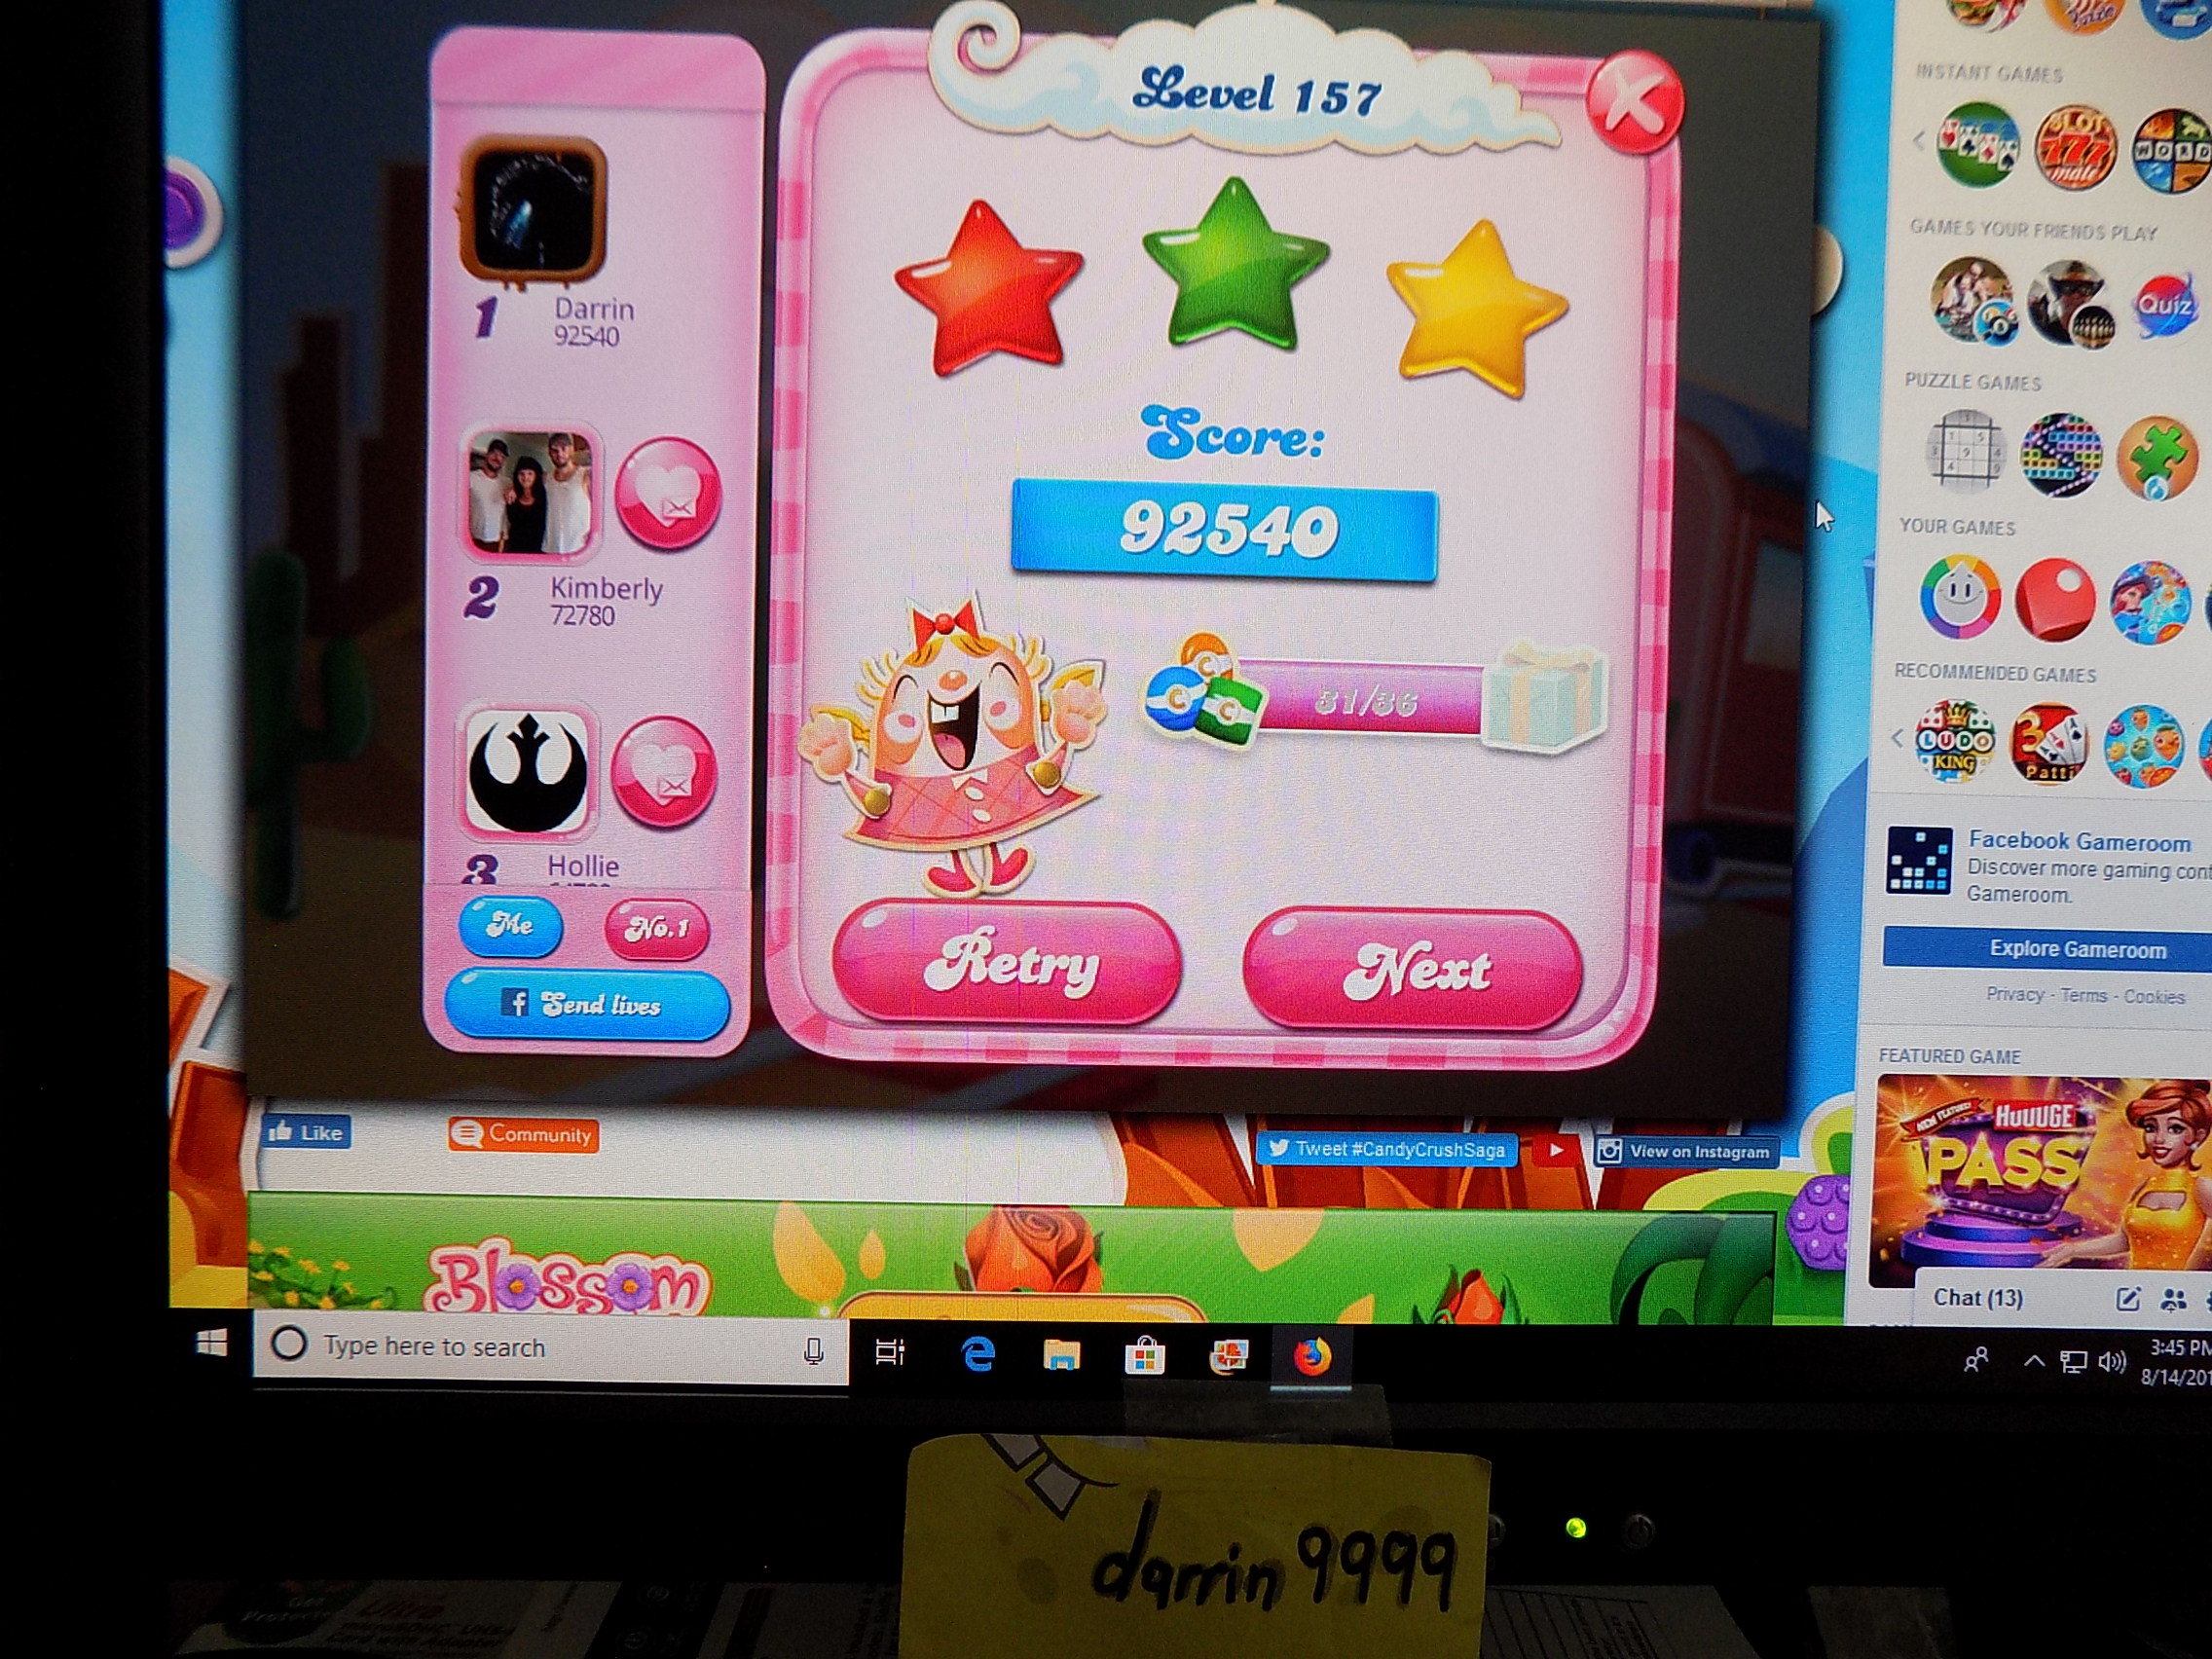 darrin9999: Candy Crush Saga: Level 157 (Web) 92,540 points on 2019-09-06 16:35:57